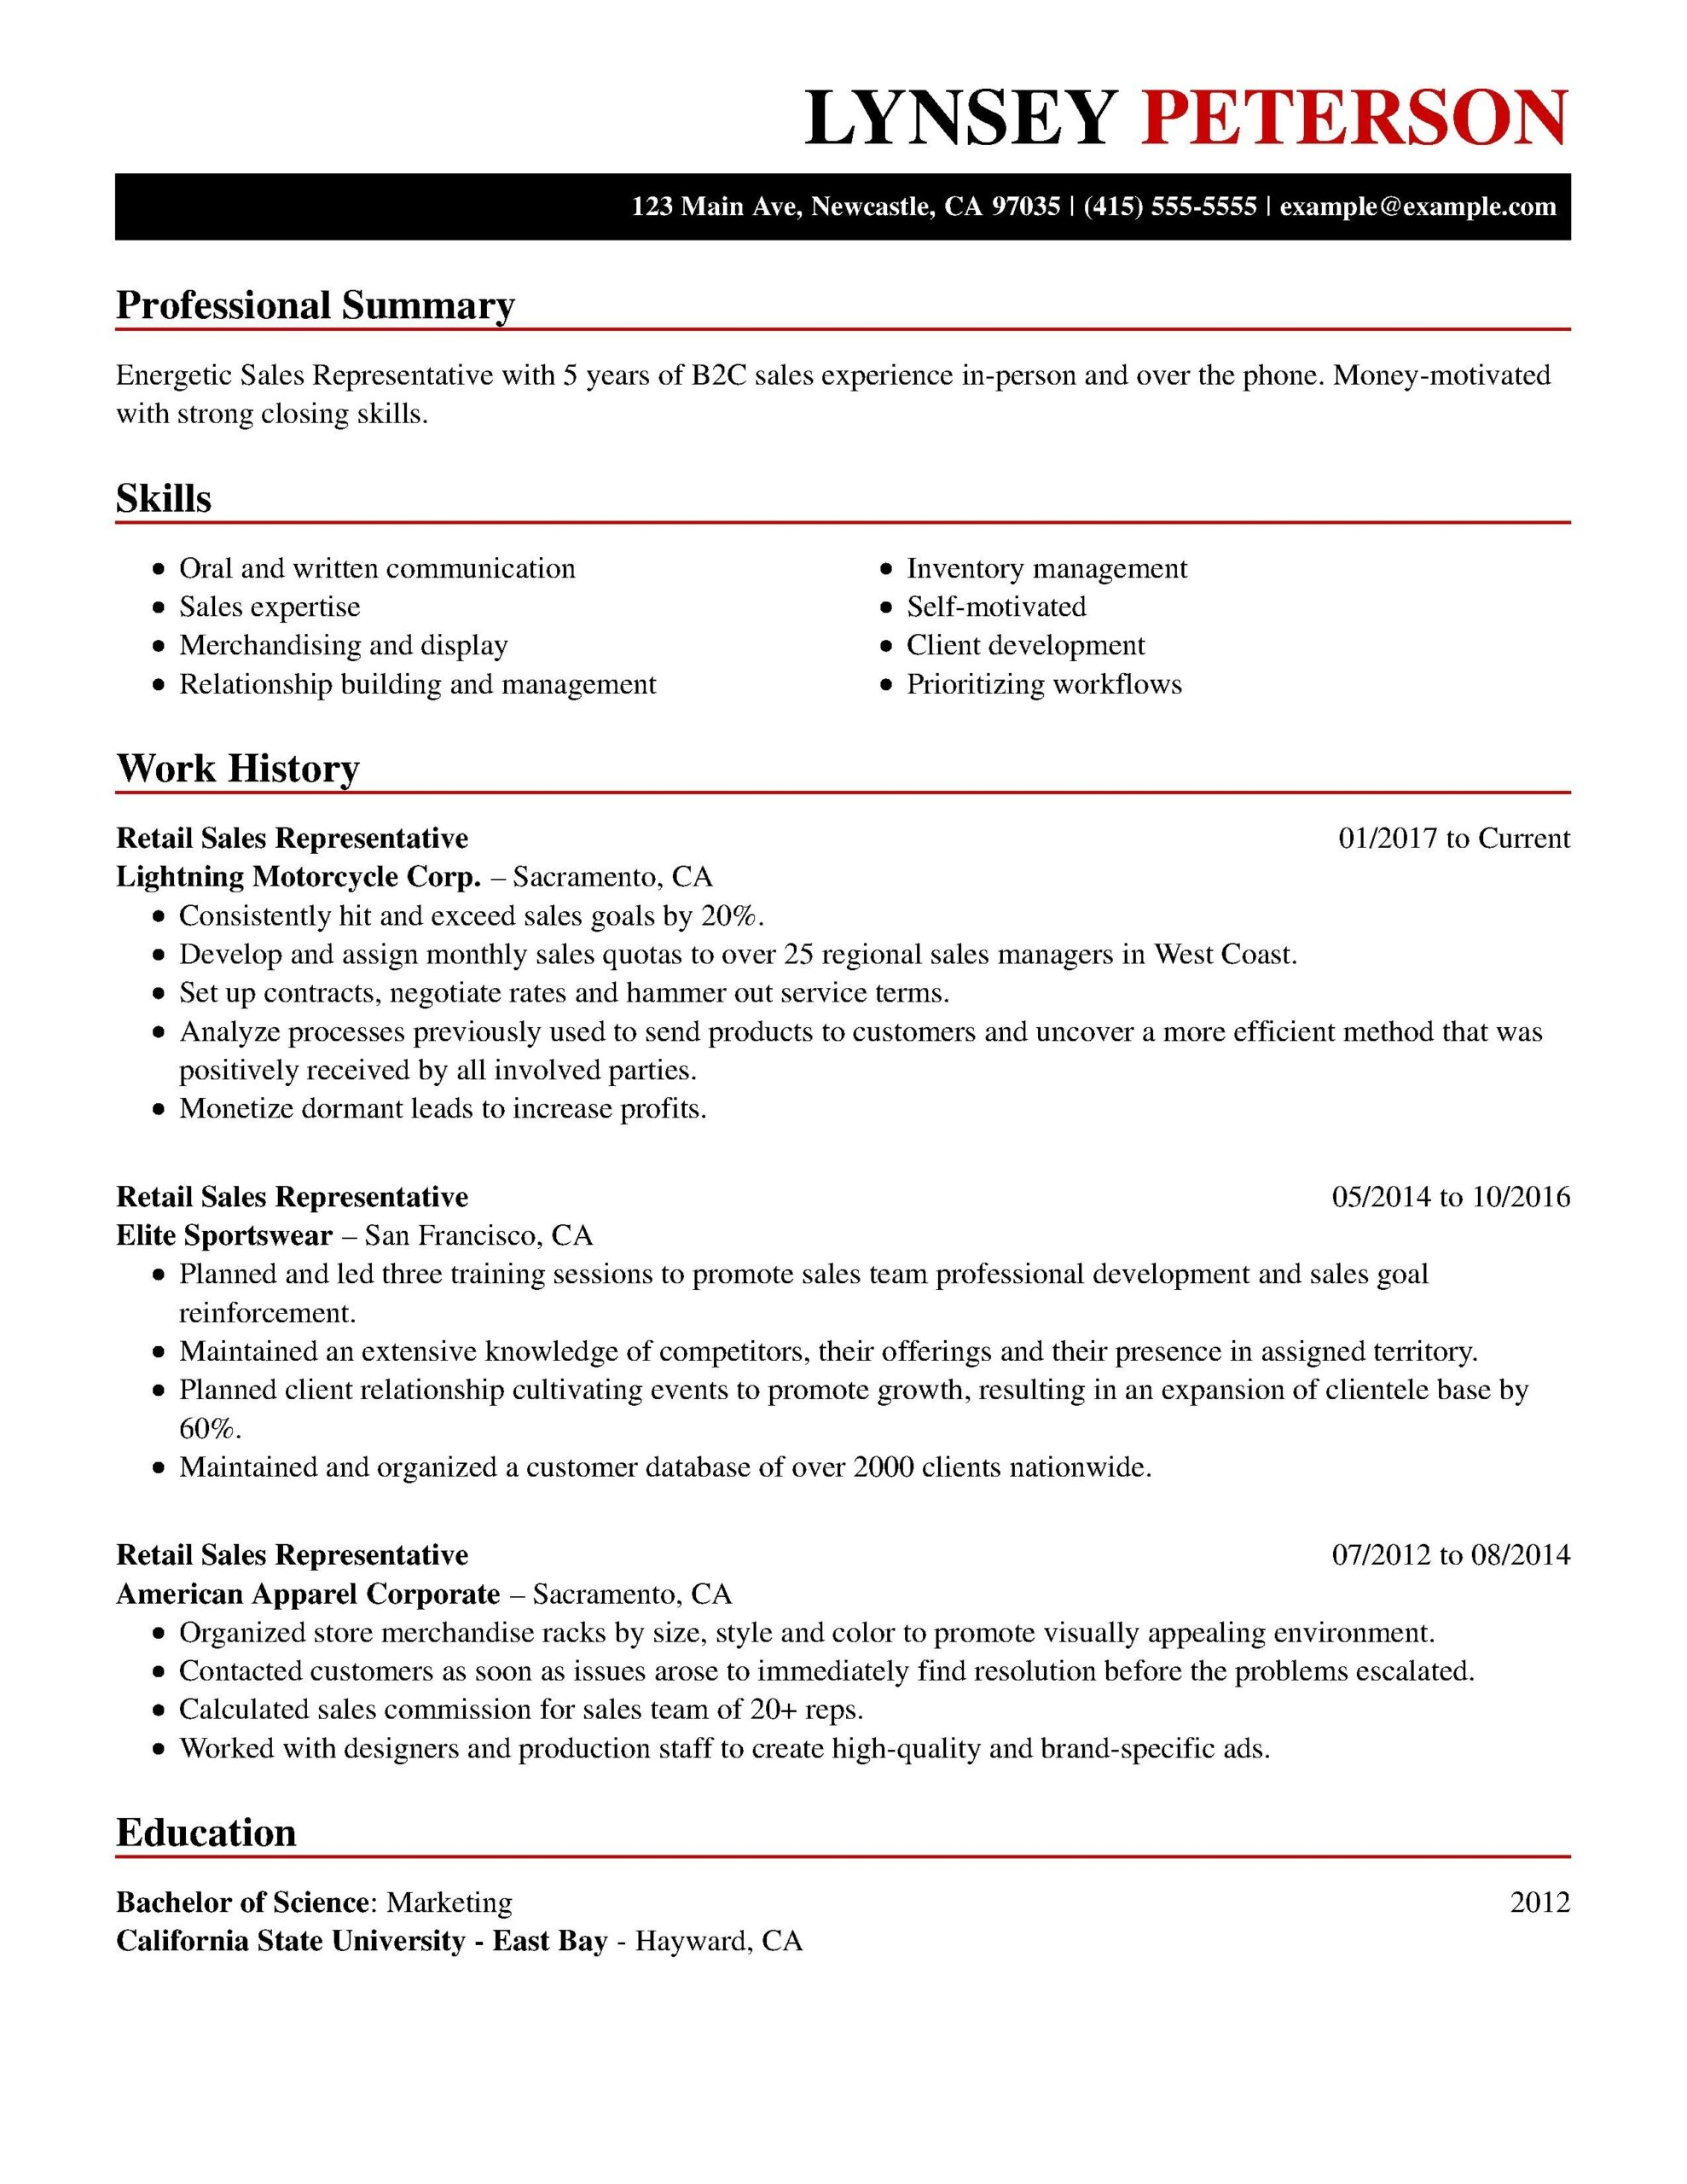 customer service resume examples professional good skills title for senior network Resume Resume Title For Customer Service